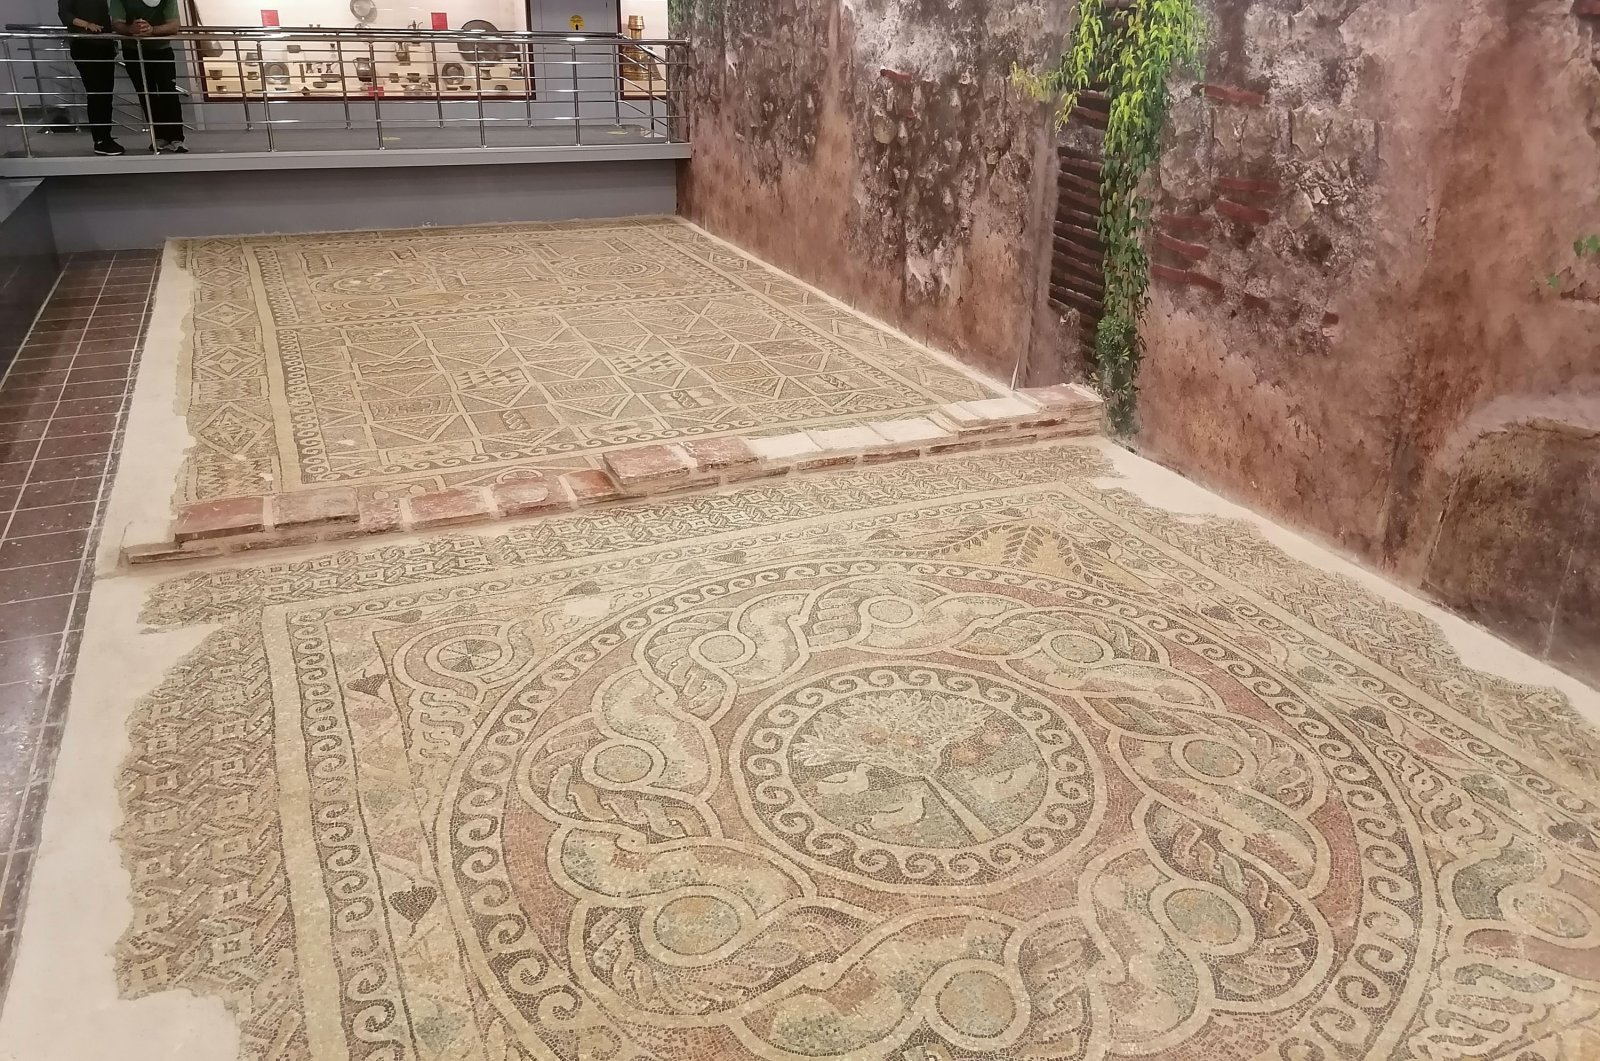 The mosaic is considered to have ornamented a chapel's floor in Amasya province, northern Turkey, July 20, 2020. (DHA Photo)